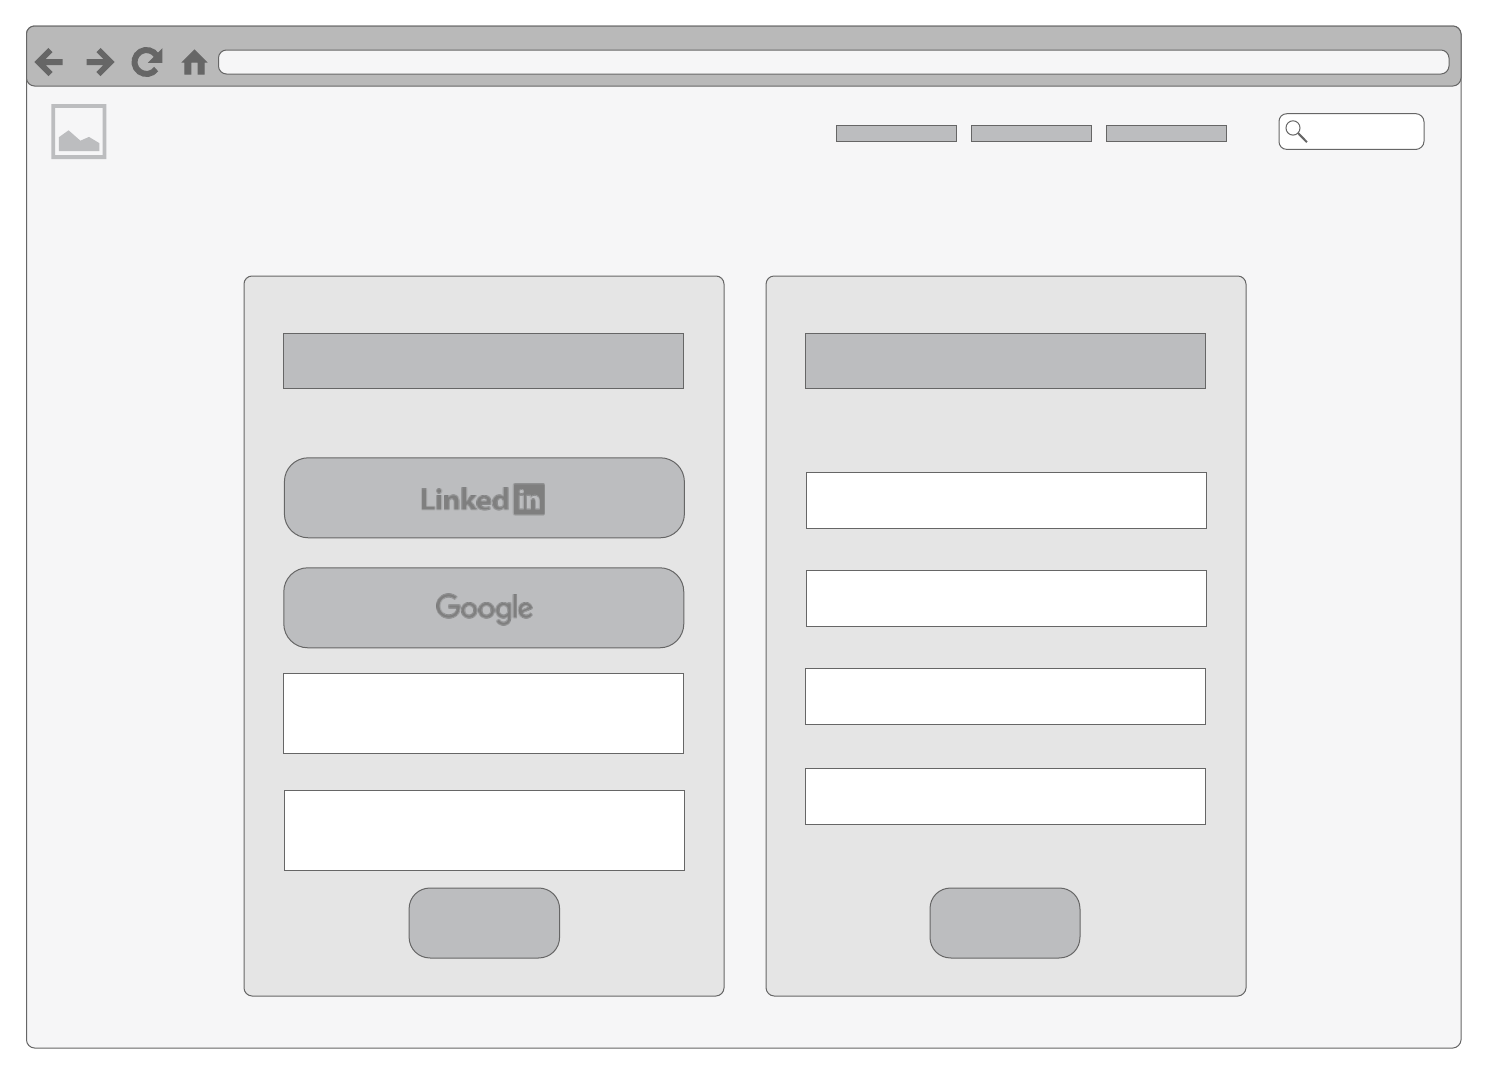 login or sign-up page basic wireframe